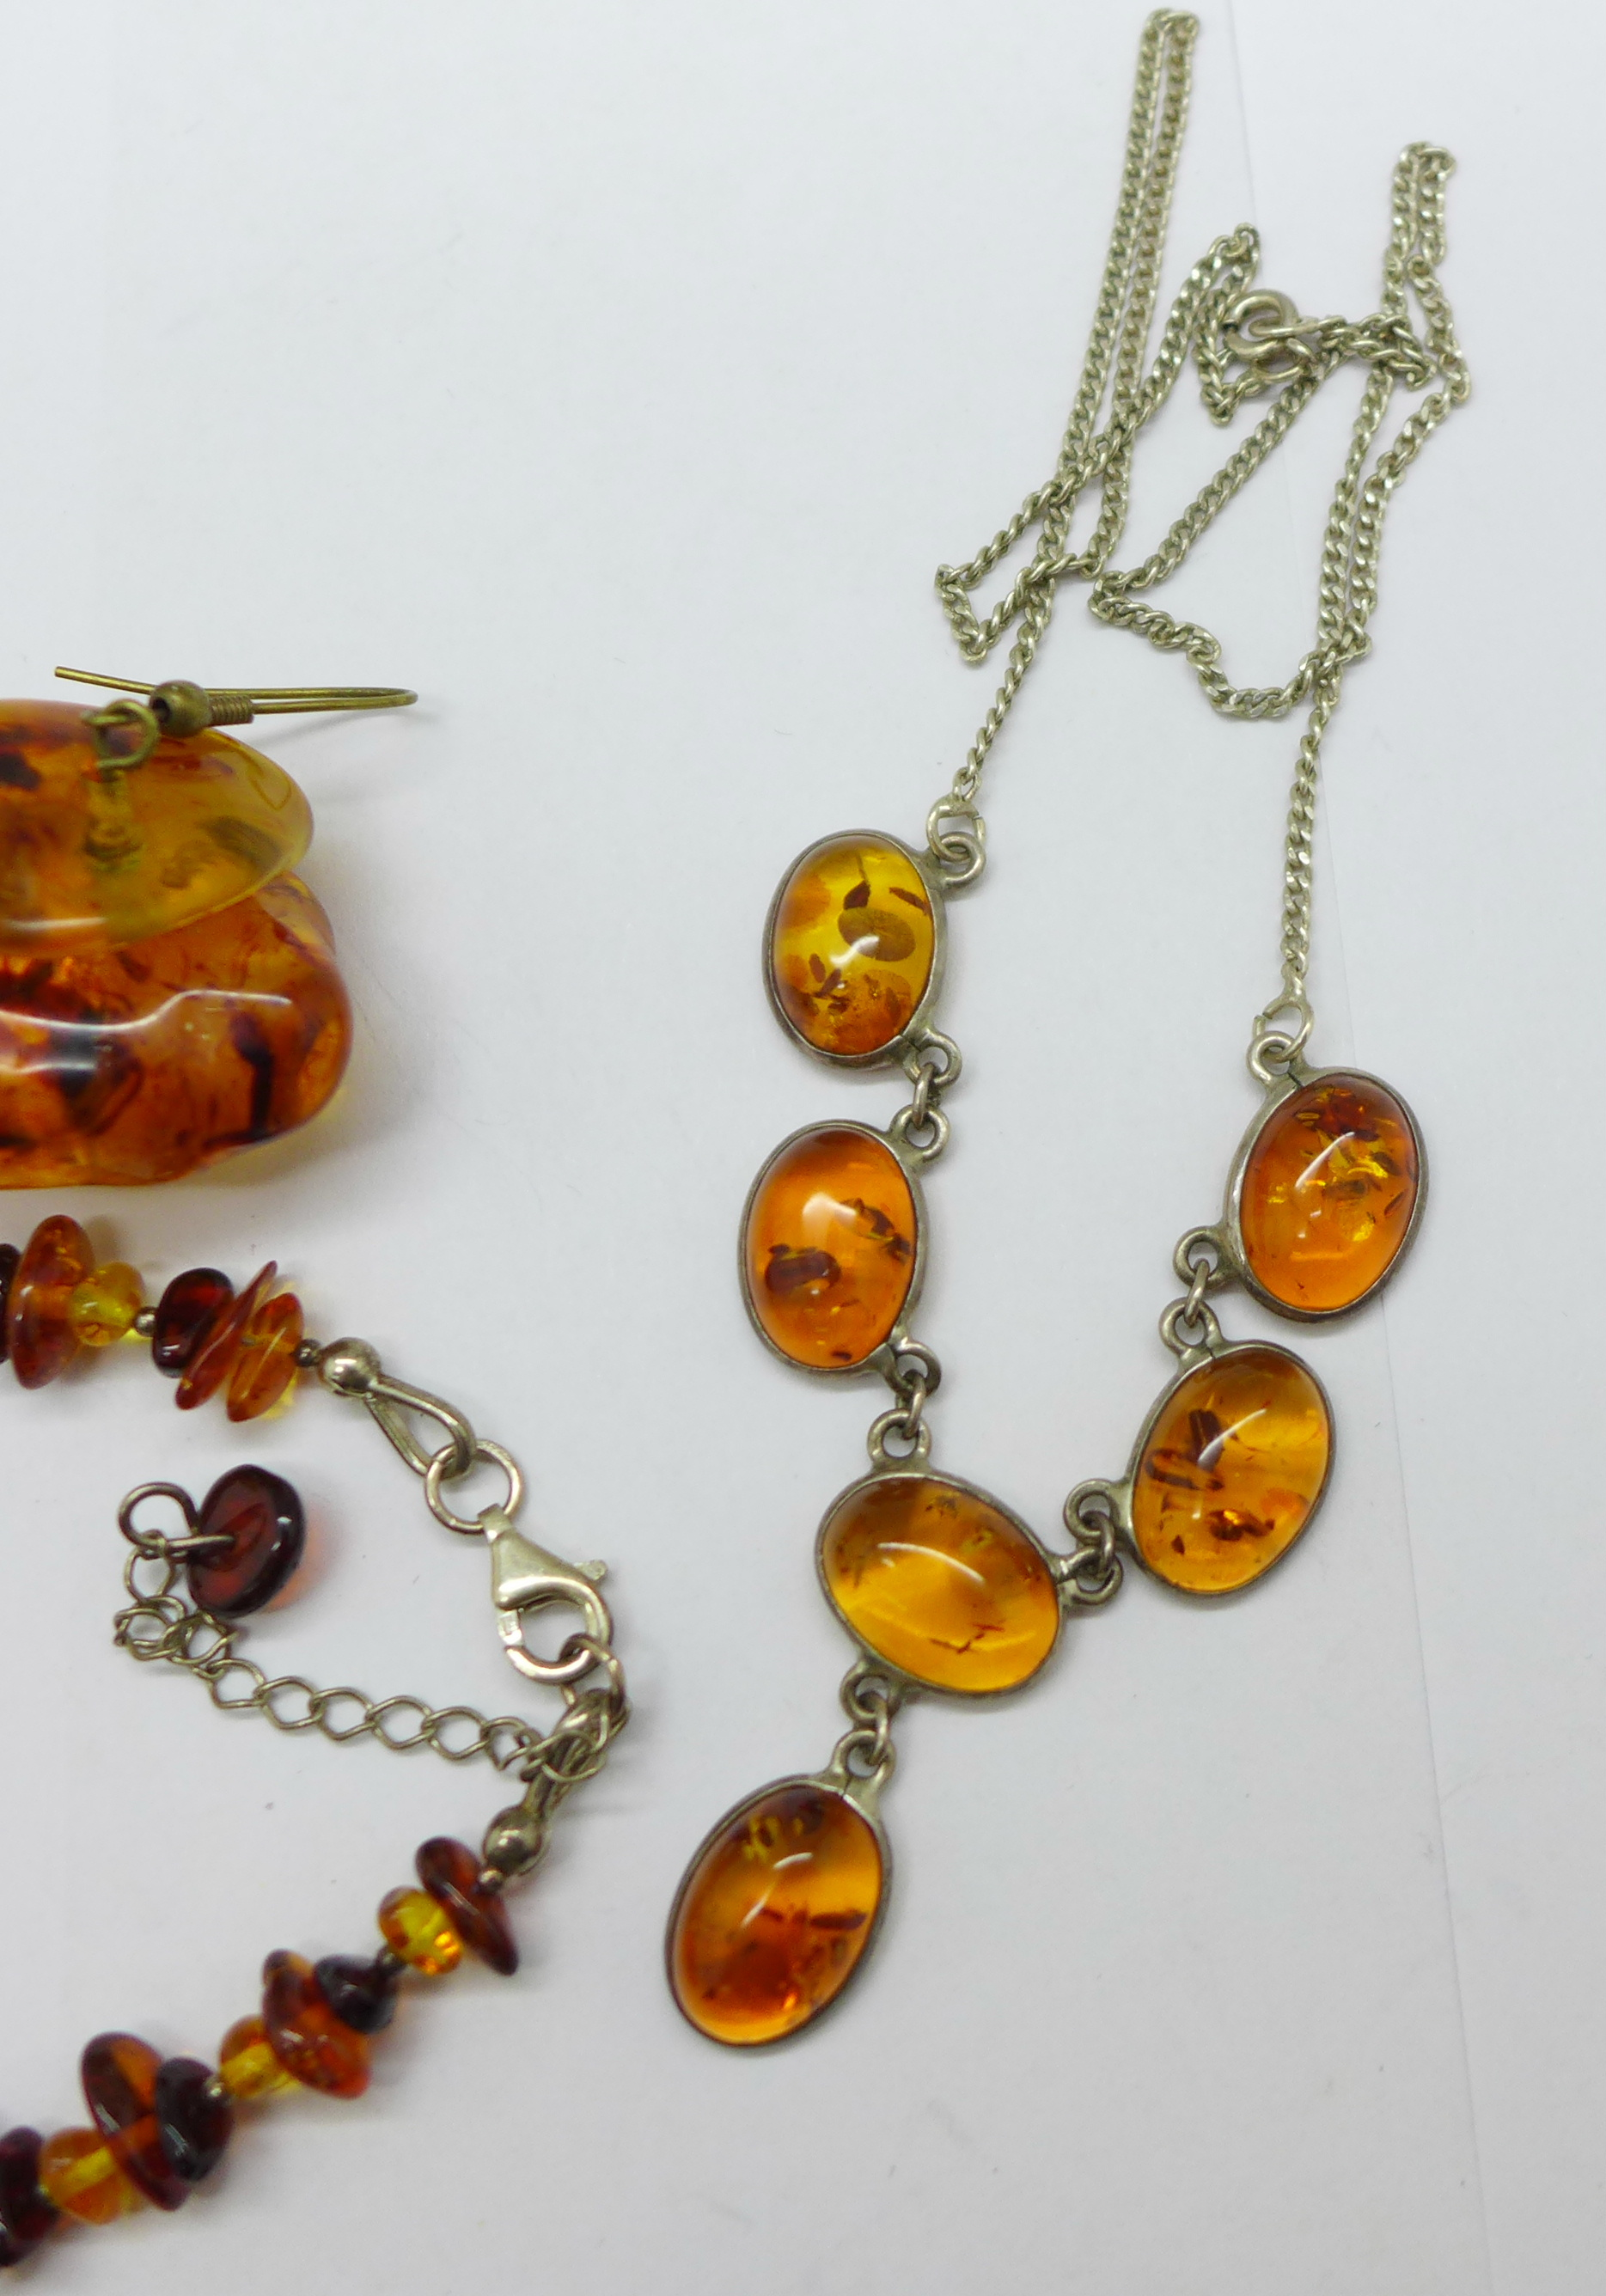 Amber coloured jewellery comprising a bracelet, earrings and a necklace - Image 2 of 3